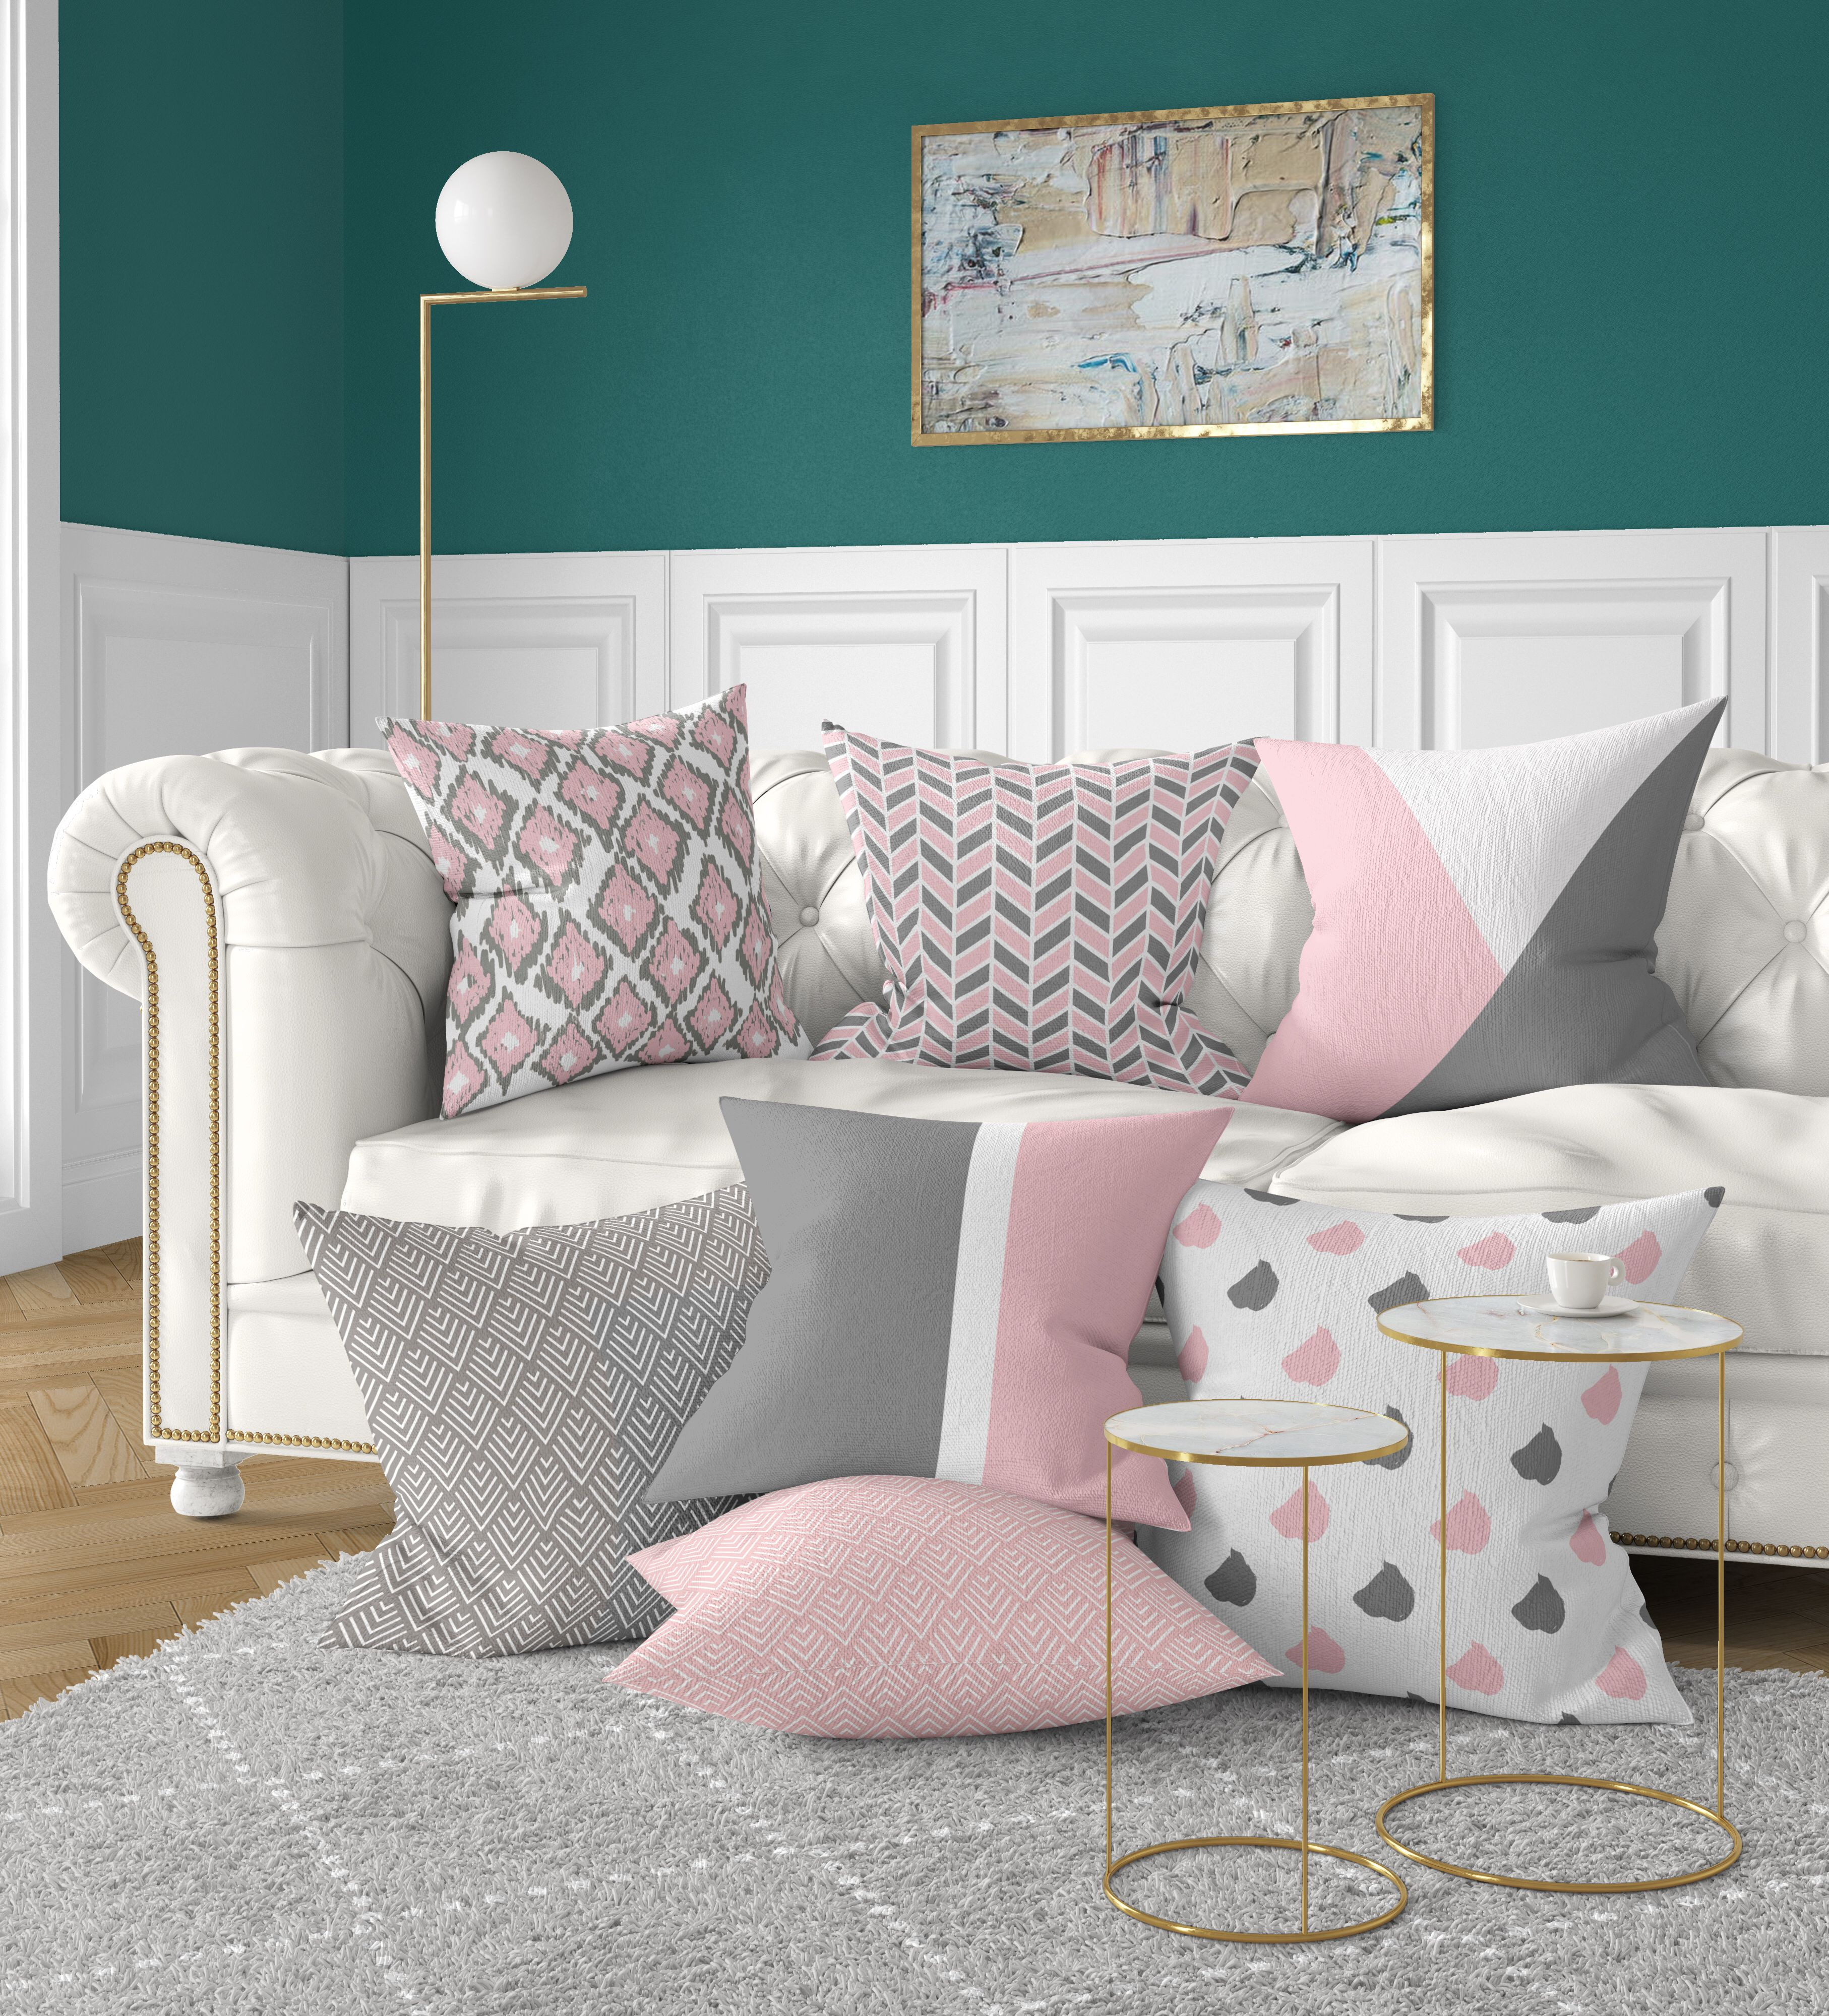 Mix and match pillow with our millennial pink and gray throw